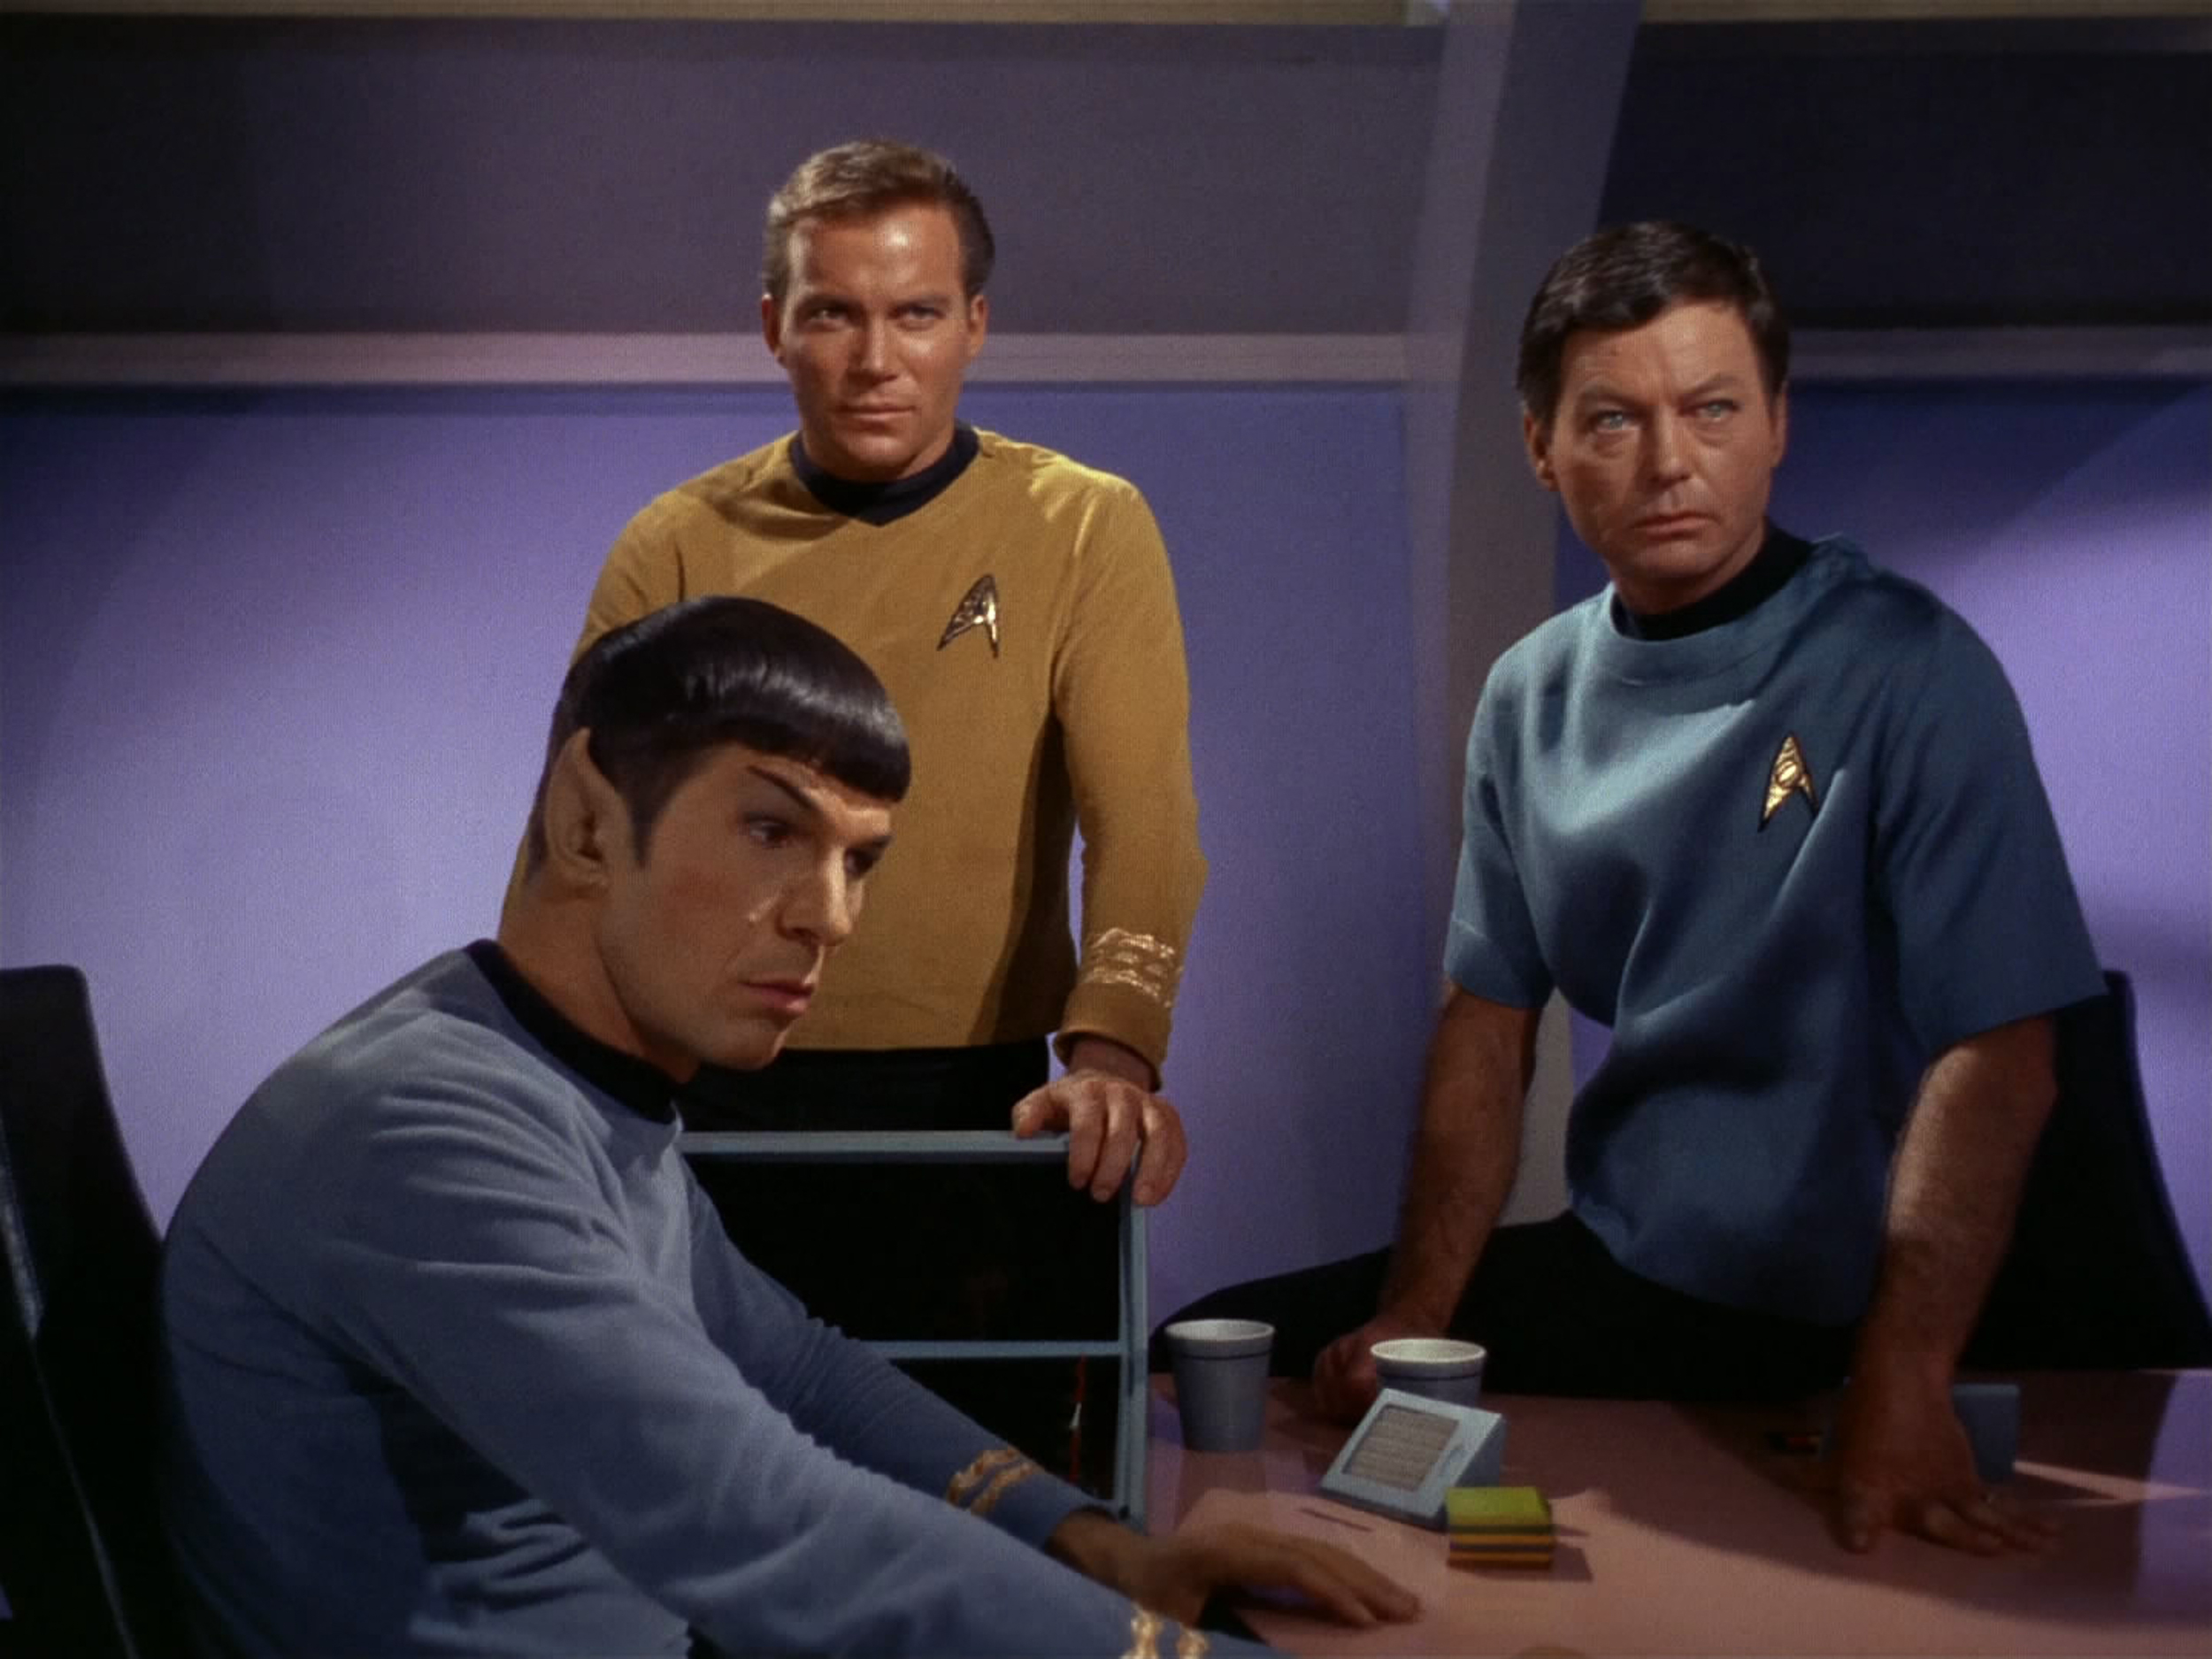 Leonard Nimoy as Mr. Spock, William Shatner as Captain James T. Kirk and DeForest Kelley as Dr. McCoy in the STAR TREK episode,  Charlie X.   Season 1, episode, 2.  Original air date Sept. 15, 1966